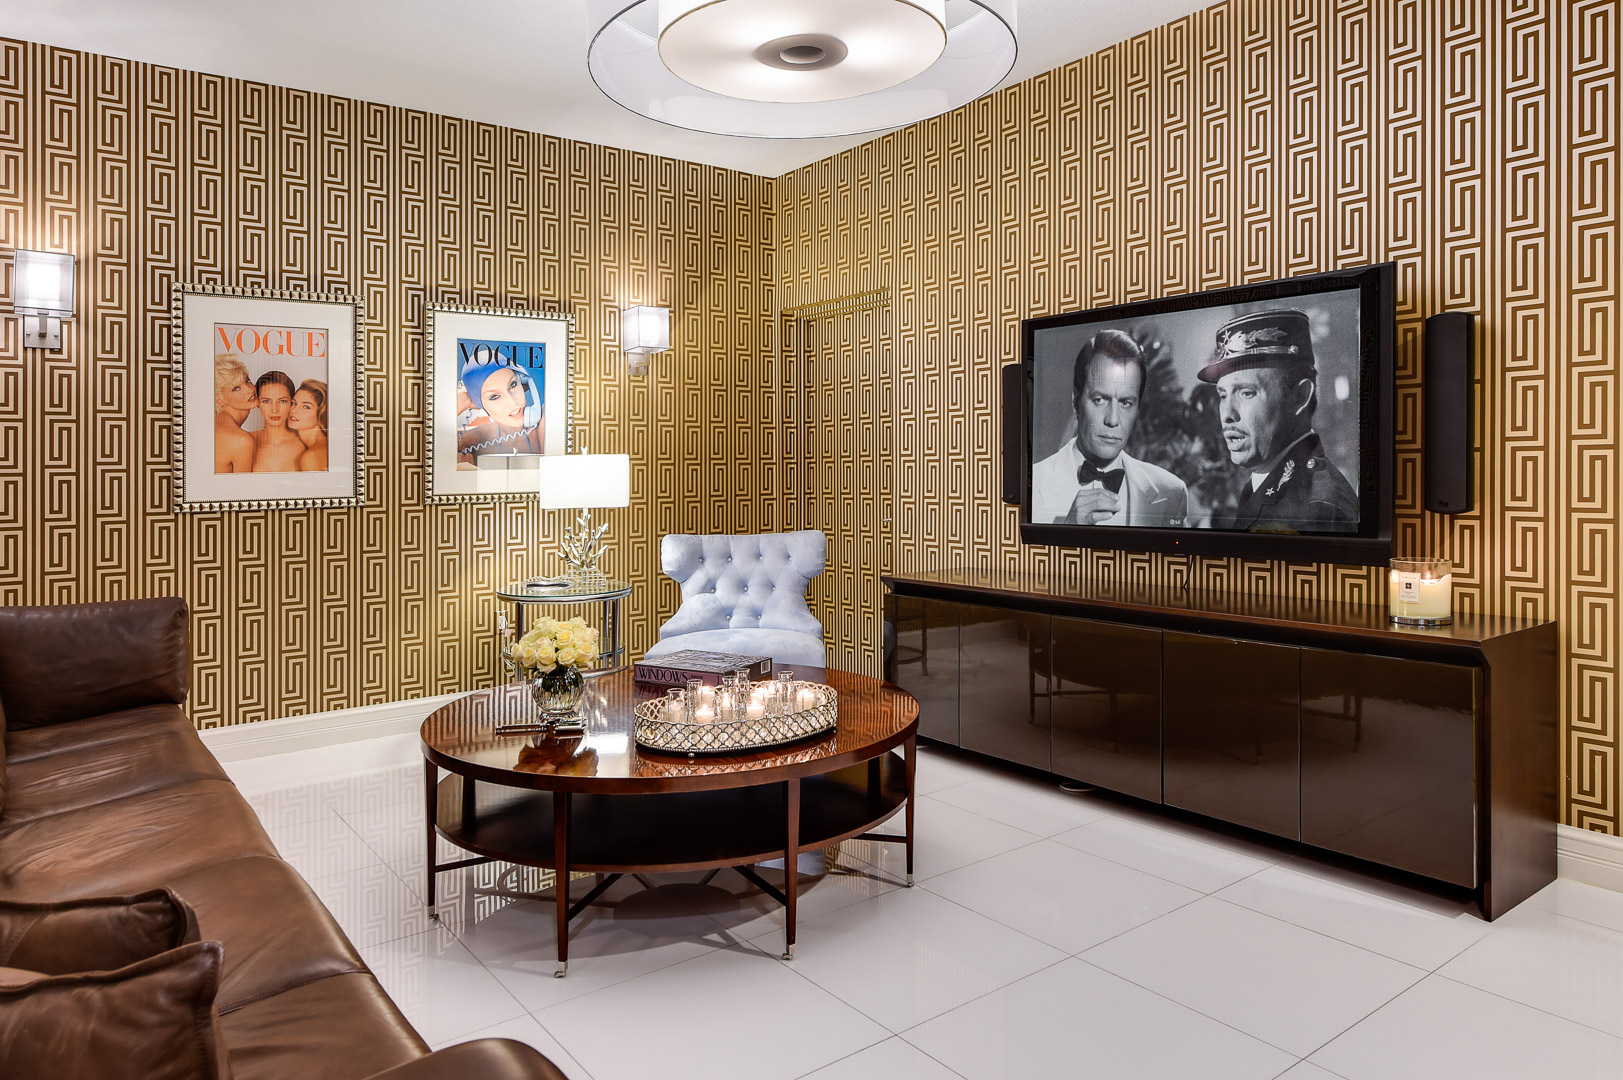 Interior of a luxurious living room with Humphrey Bogart's Casablanca on the TV.